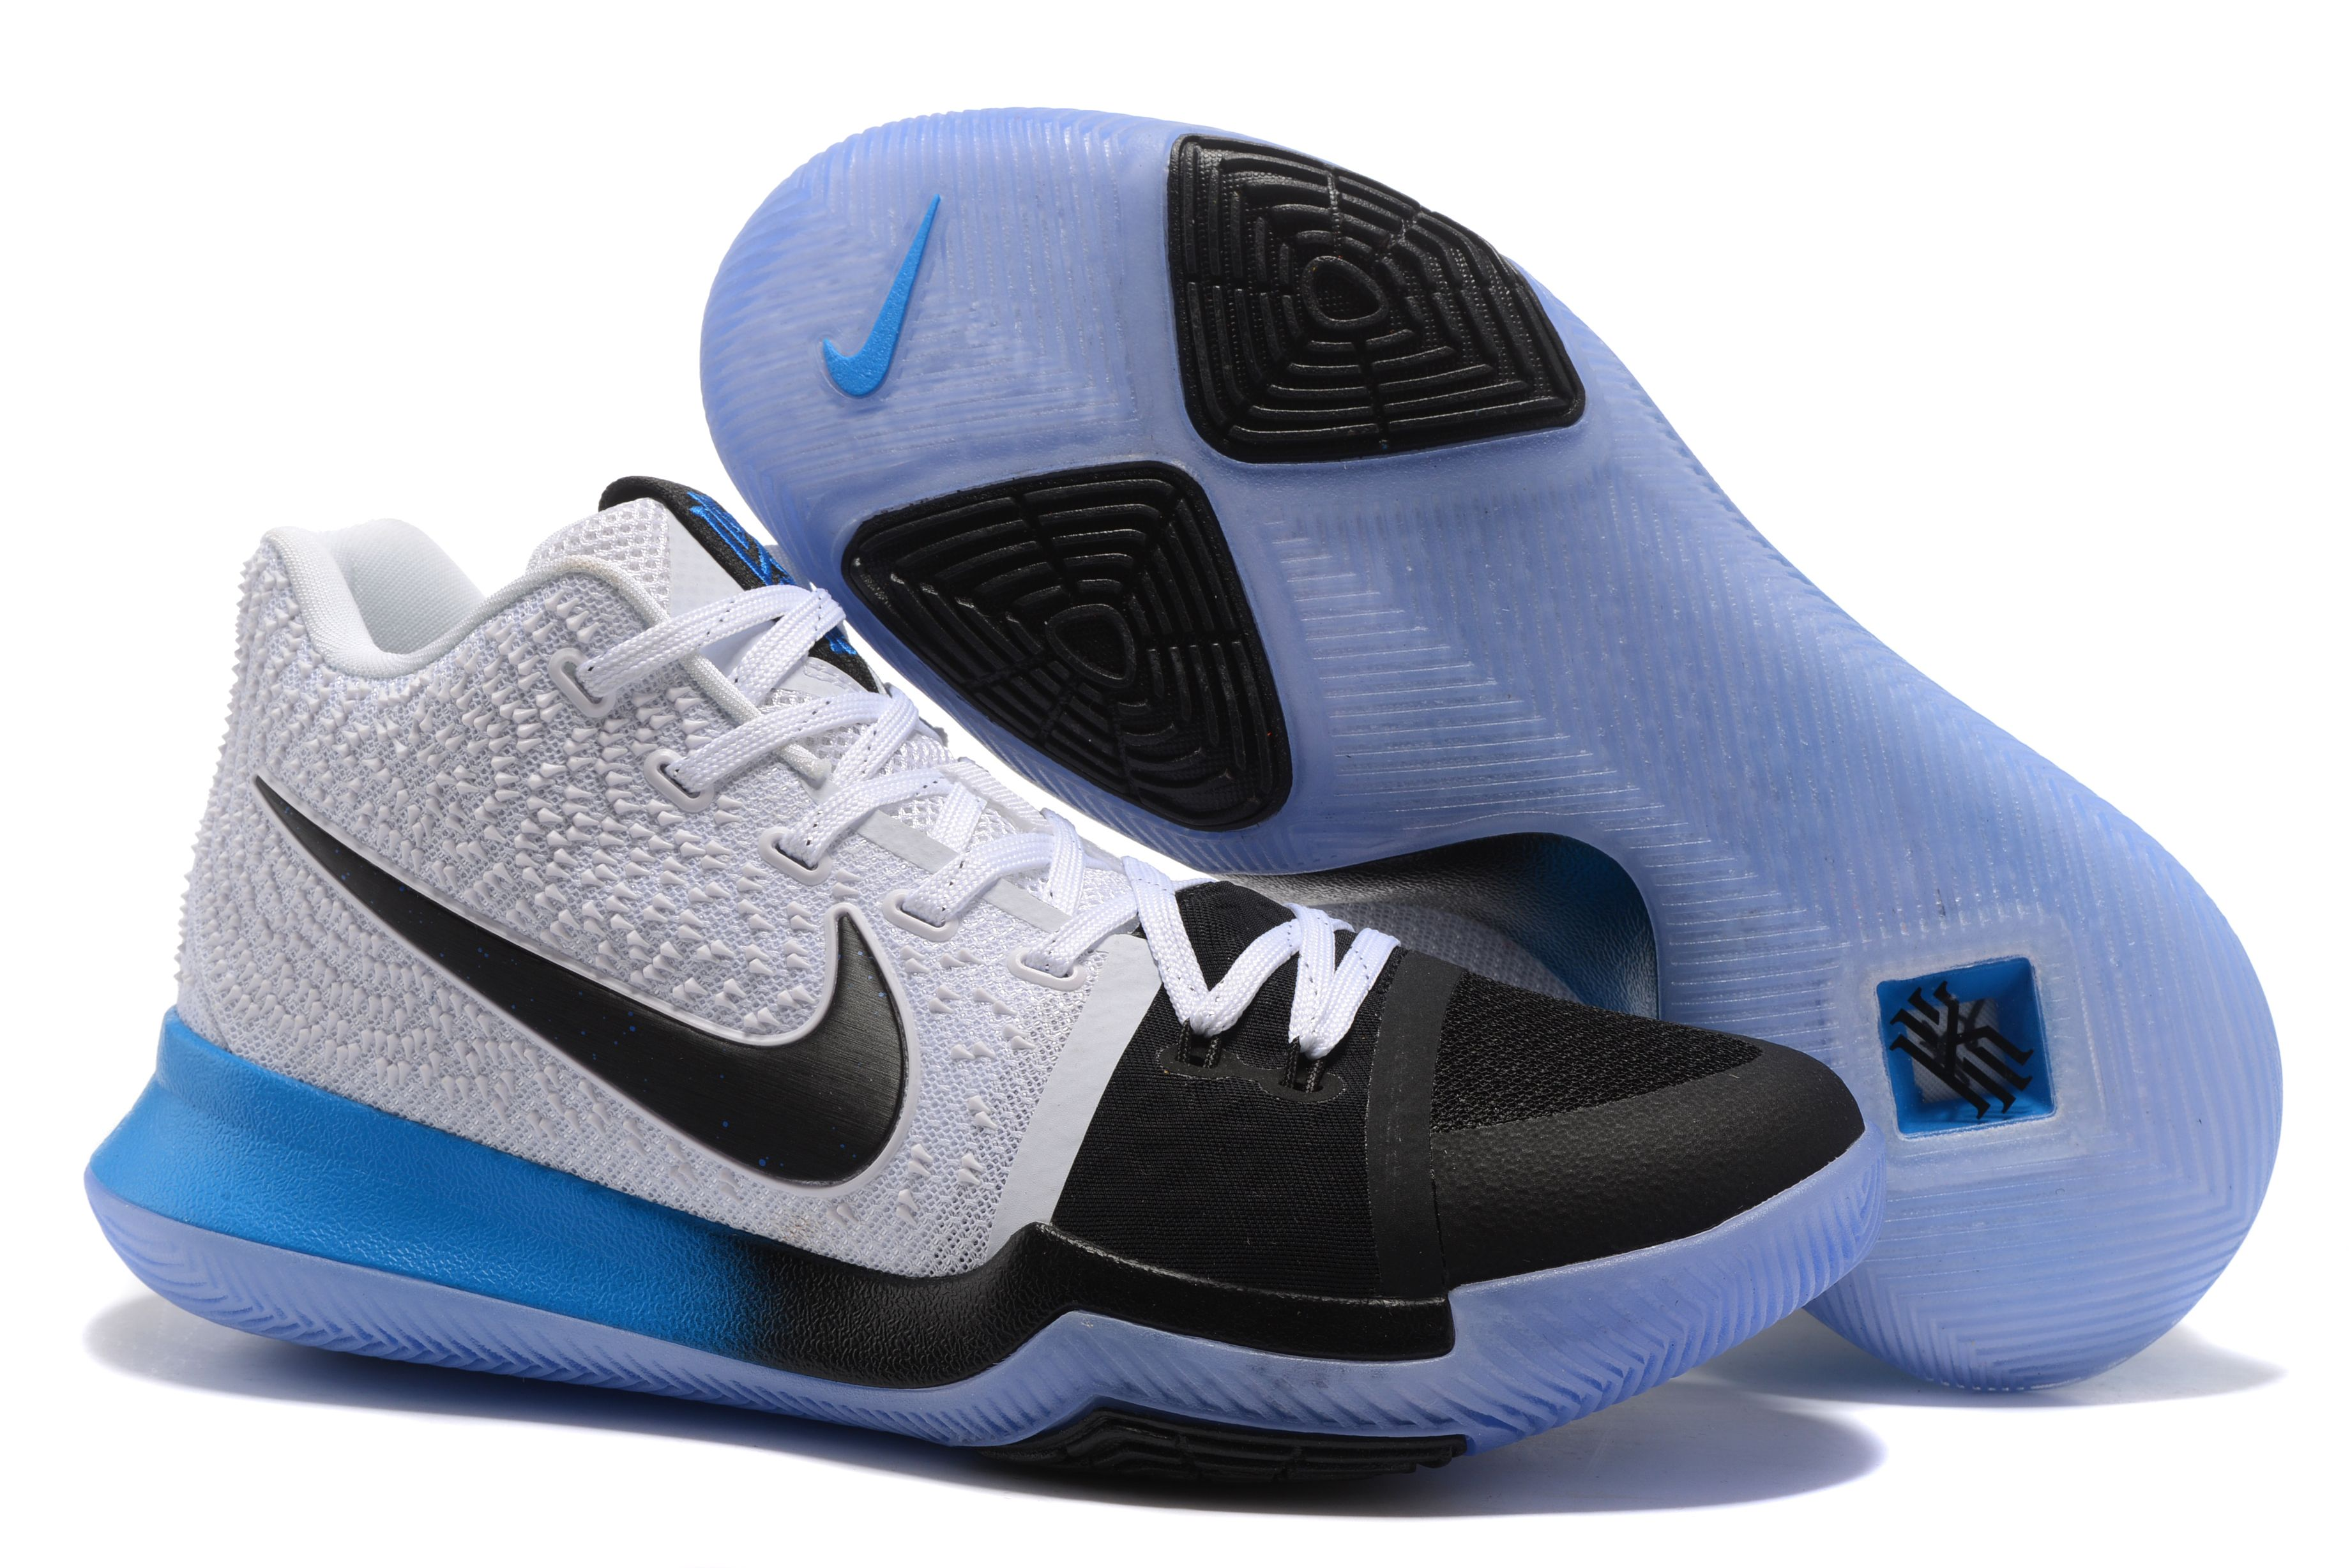 796ca4c64ed 2017 Nike Kyrie 3 PE White Black with Gradient Blue Black For Sale ...